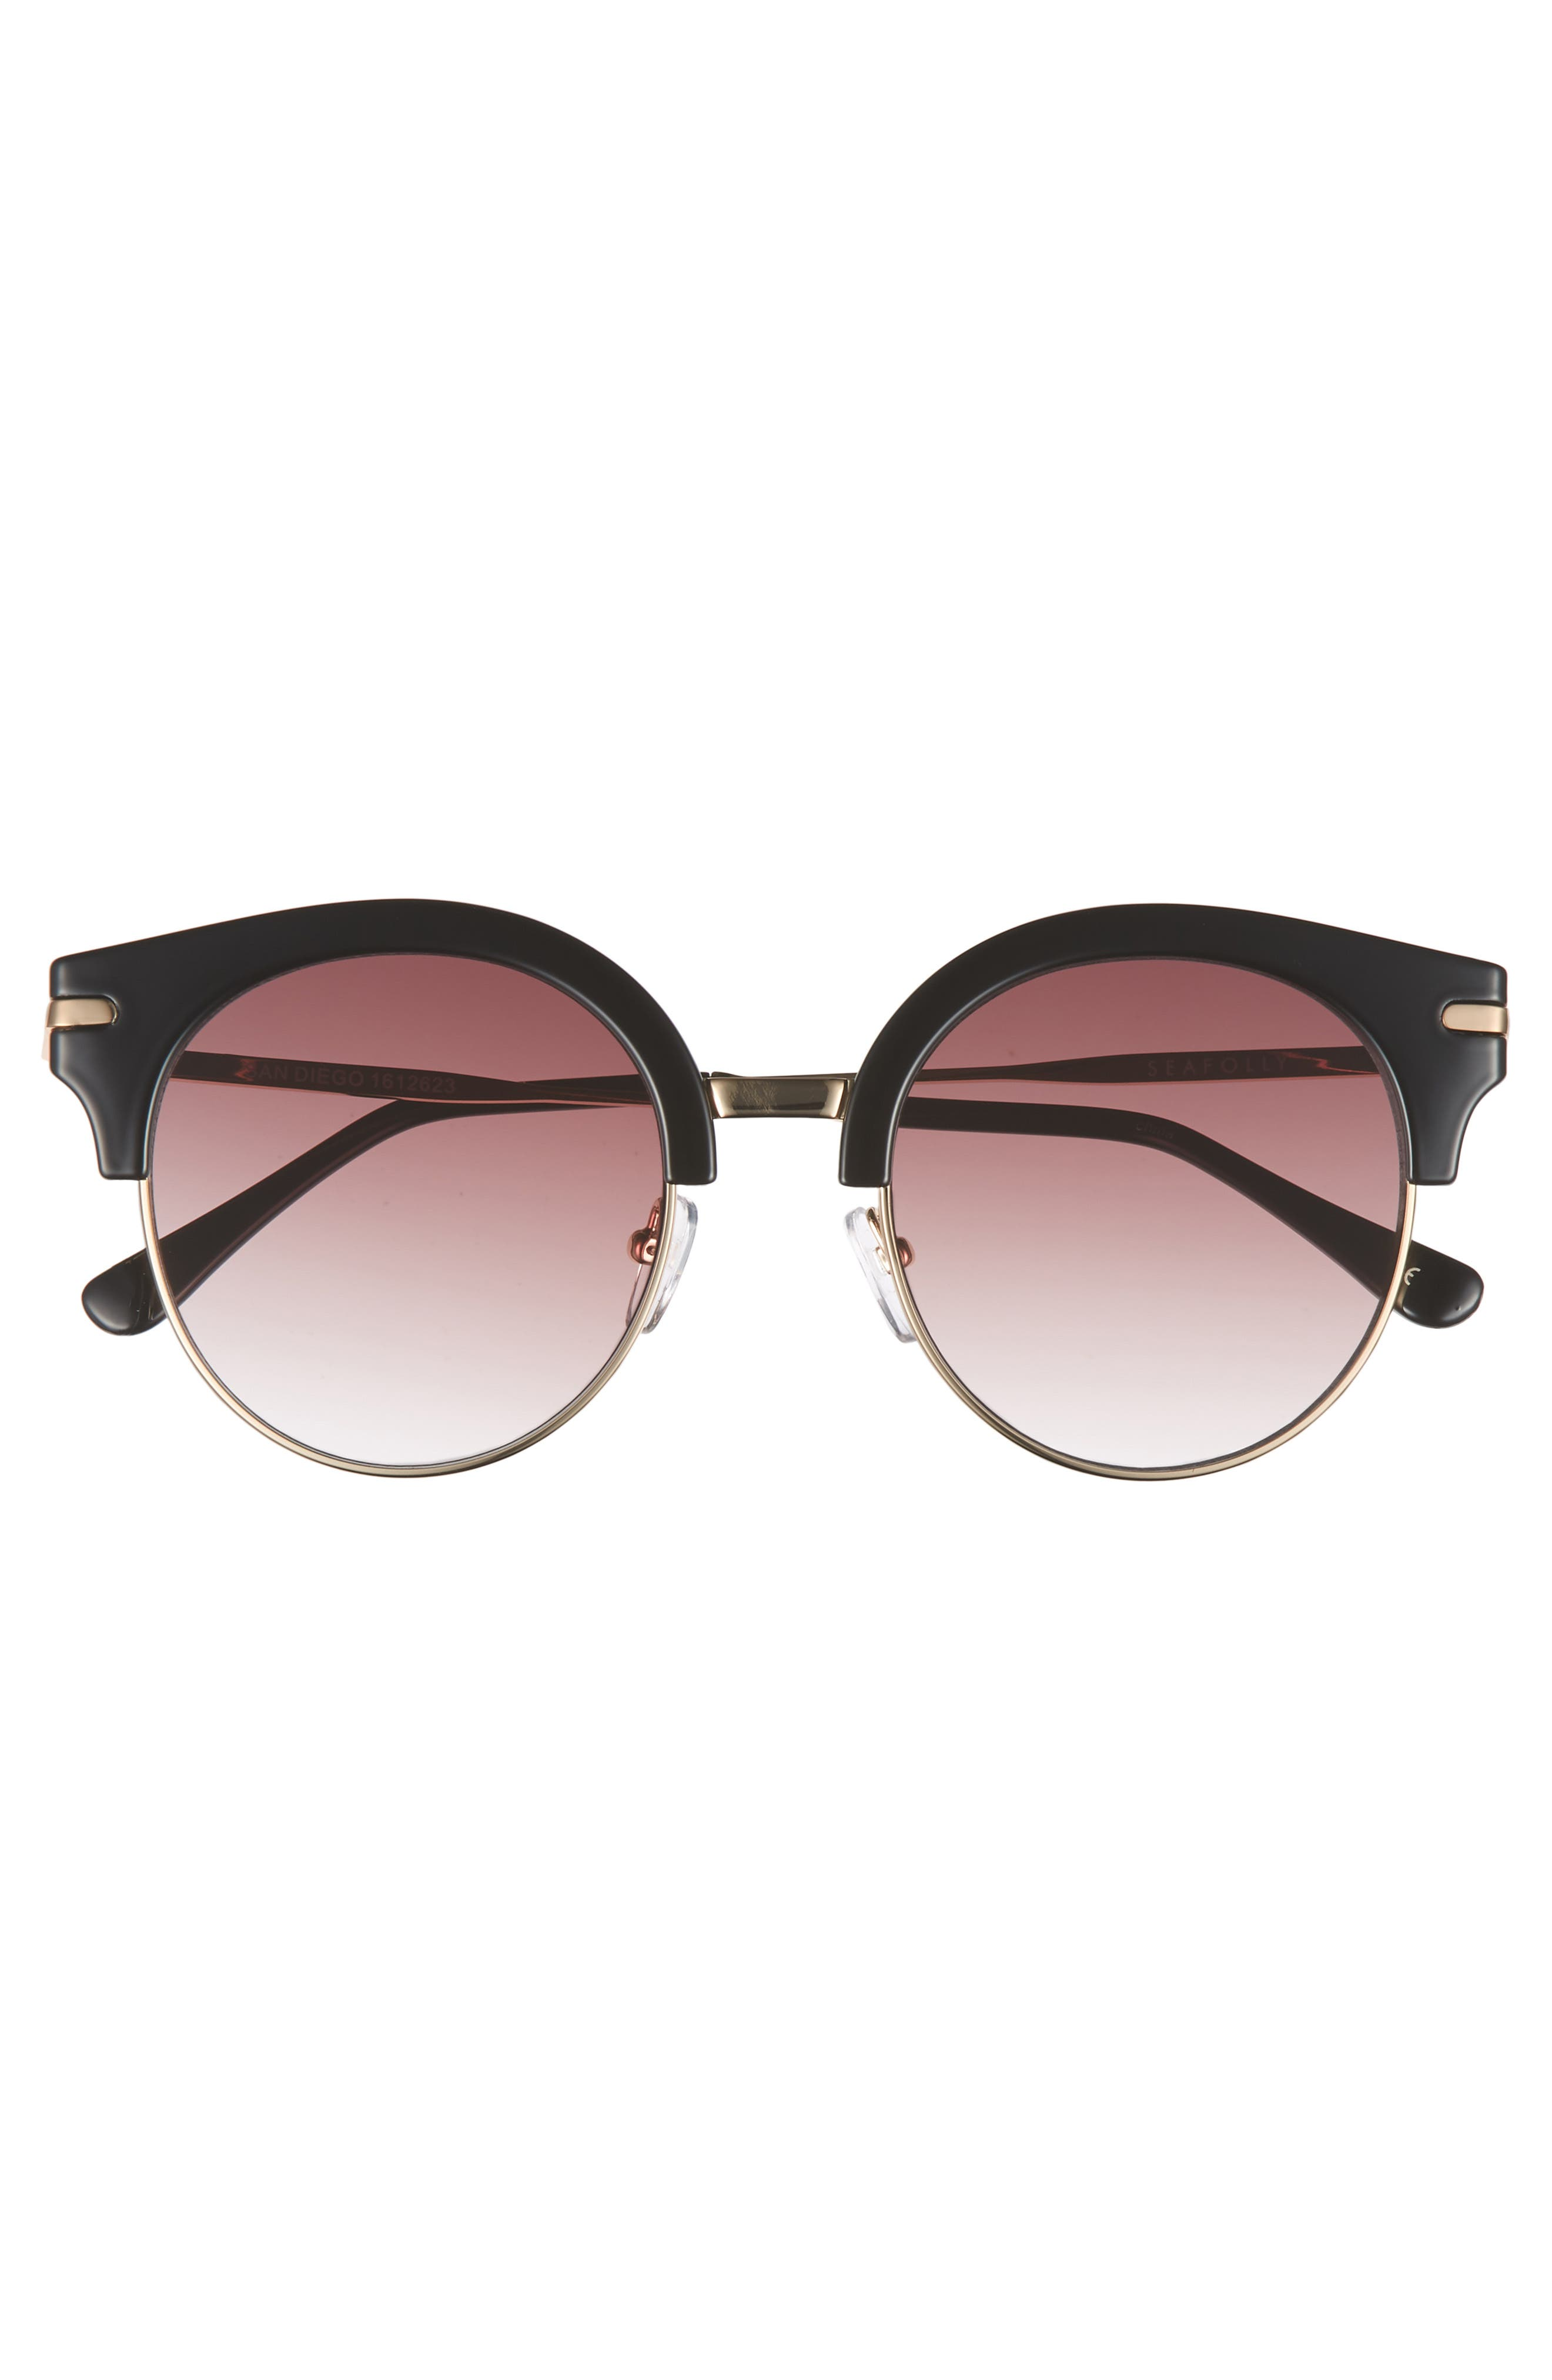 San Diego 52mm Cat Eye Sunglasses,                             Alternate thumbnail 3, color,                             001